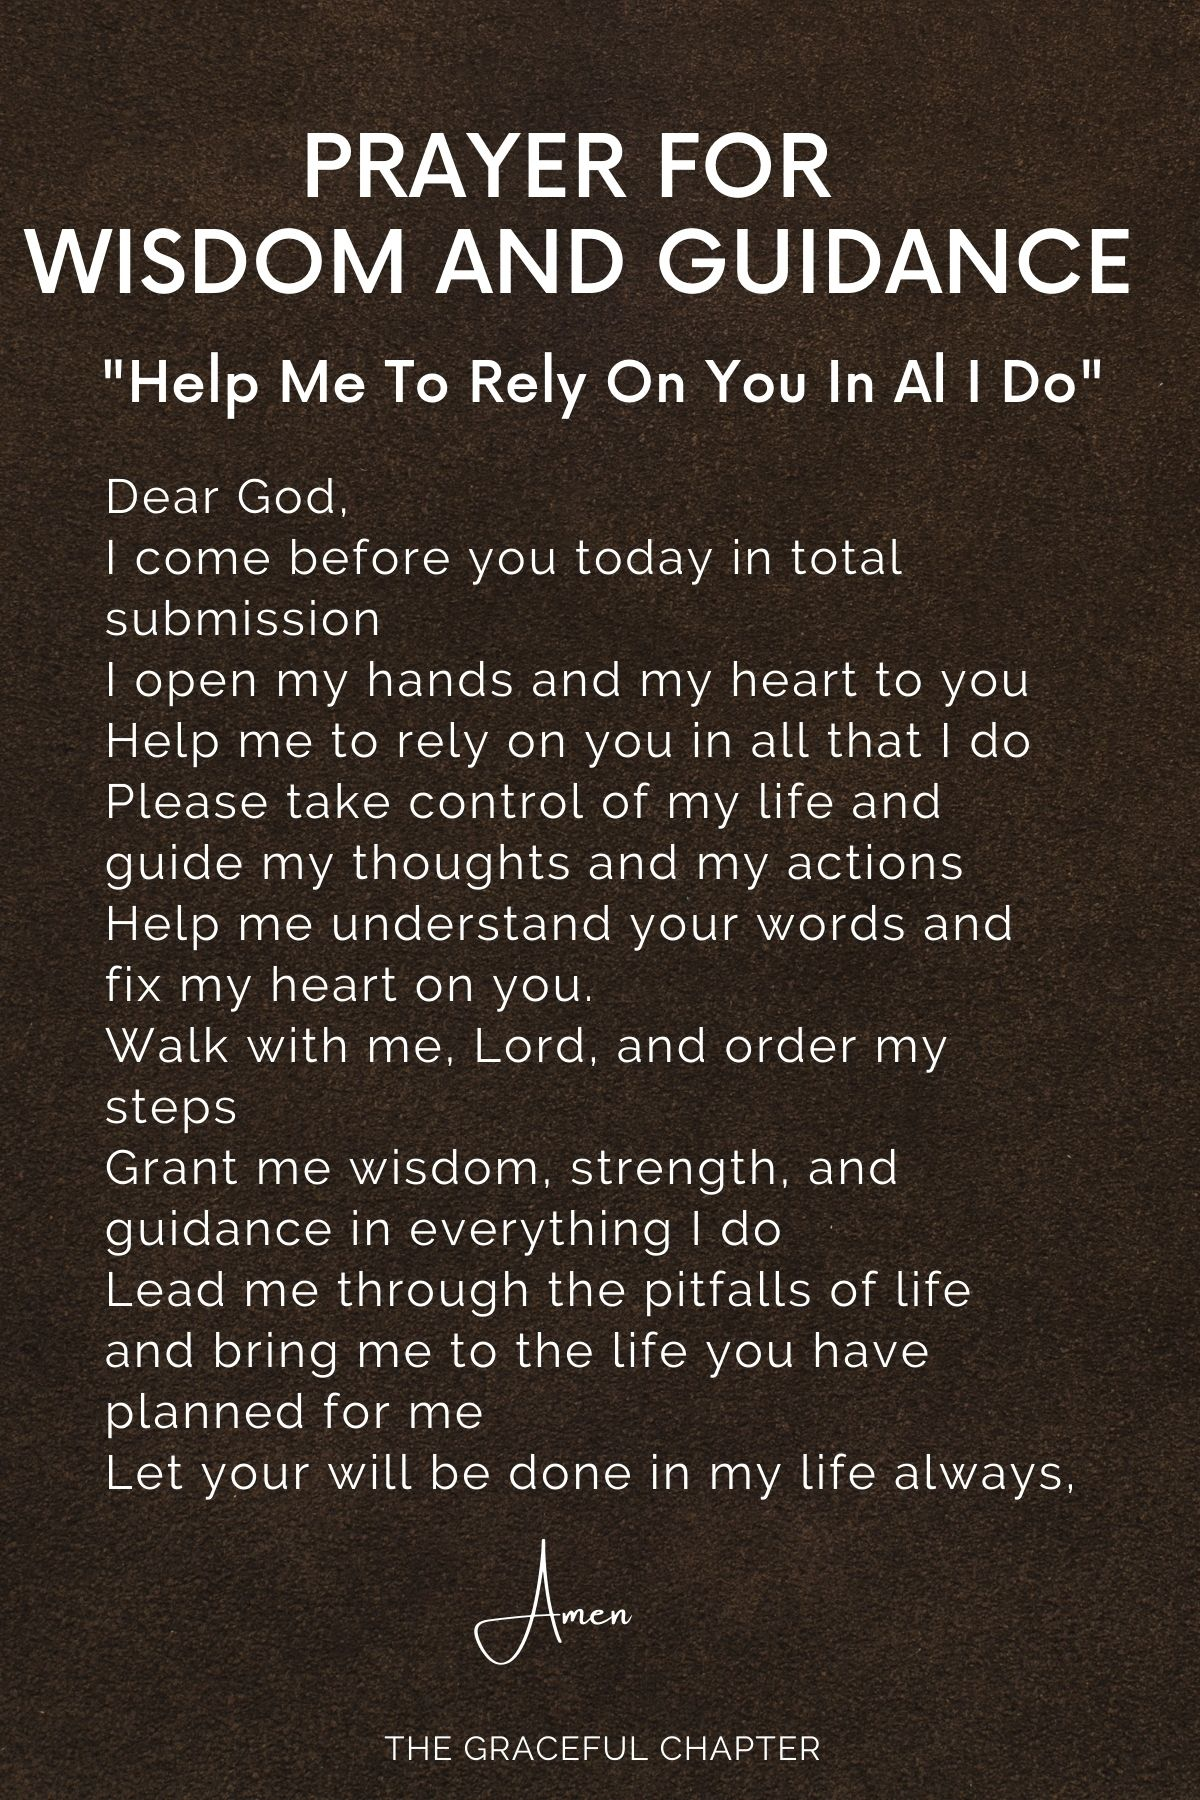 Help me to rely on you in all that I do